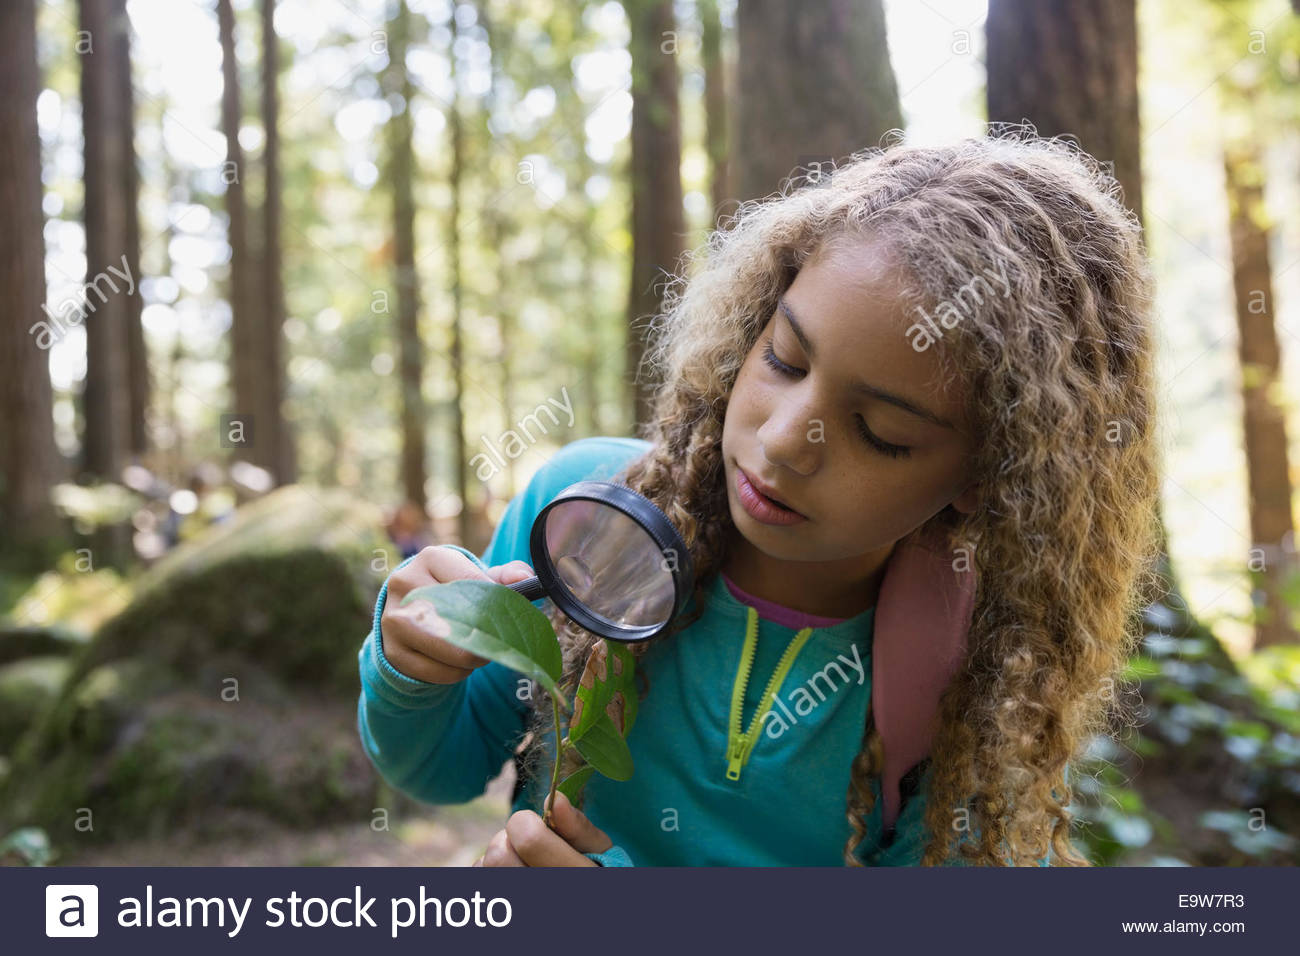 Girl with magnifying glass examining plant leaf - Stock Image